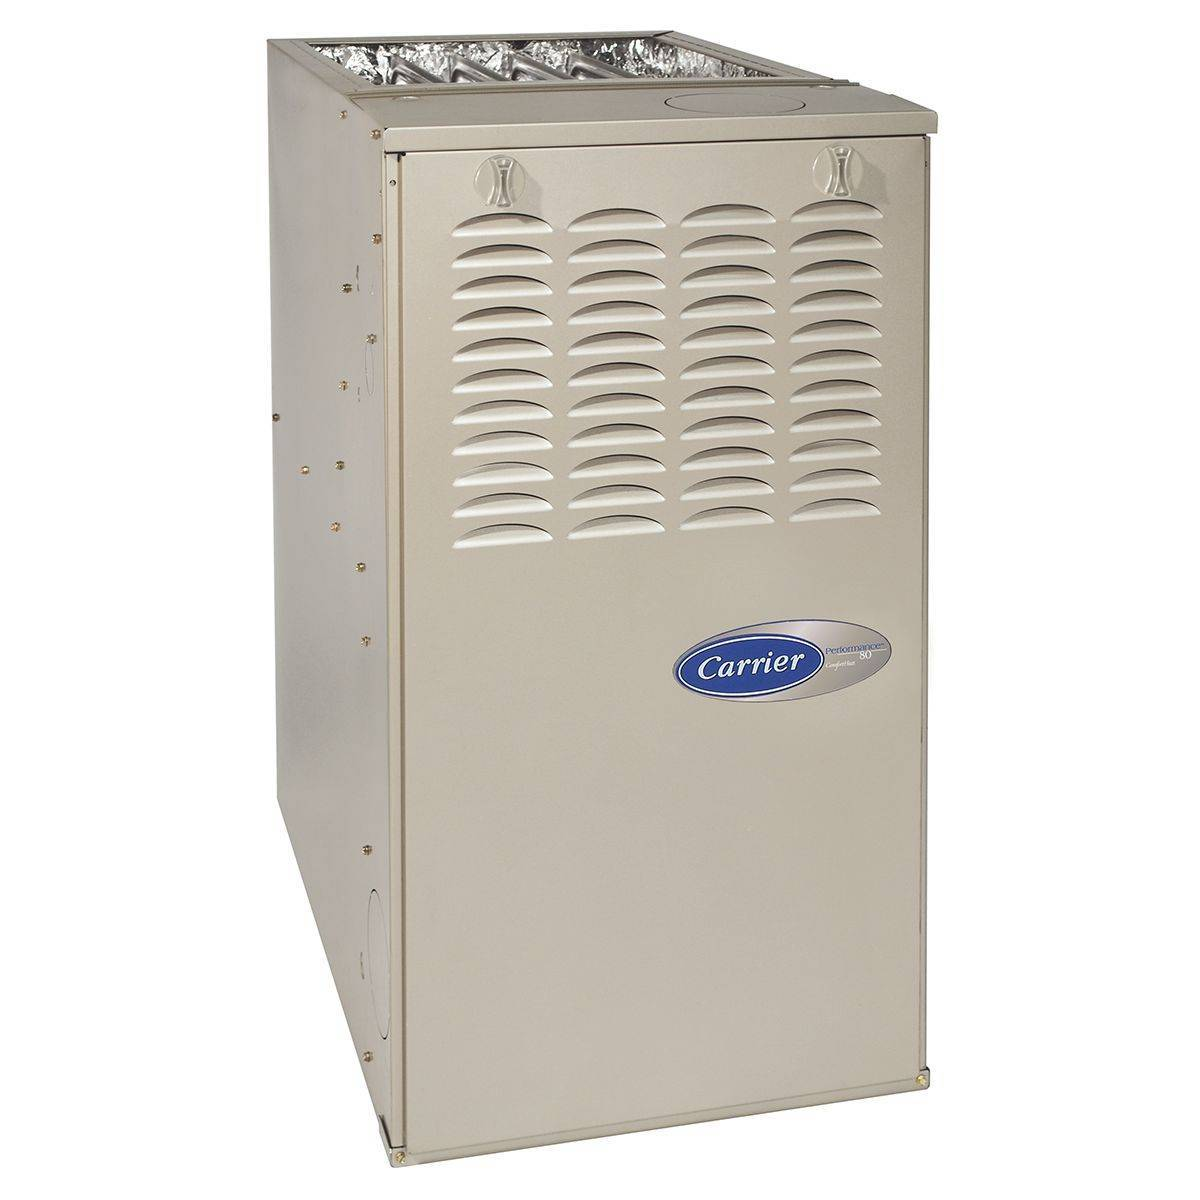 Carrier 80 Gas Furnace